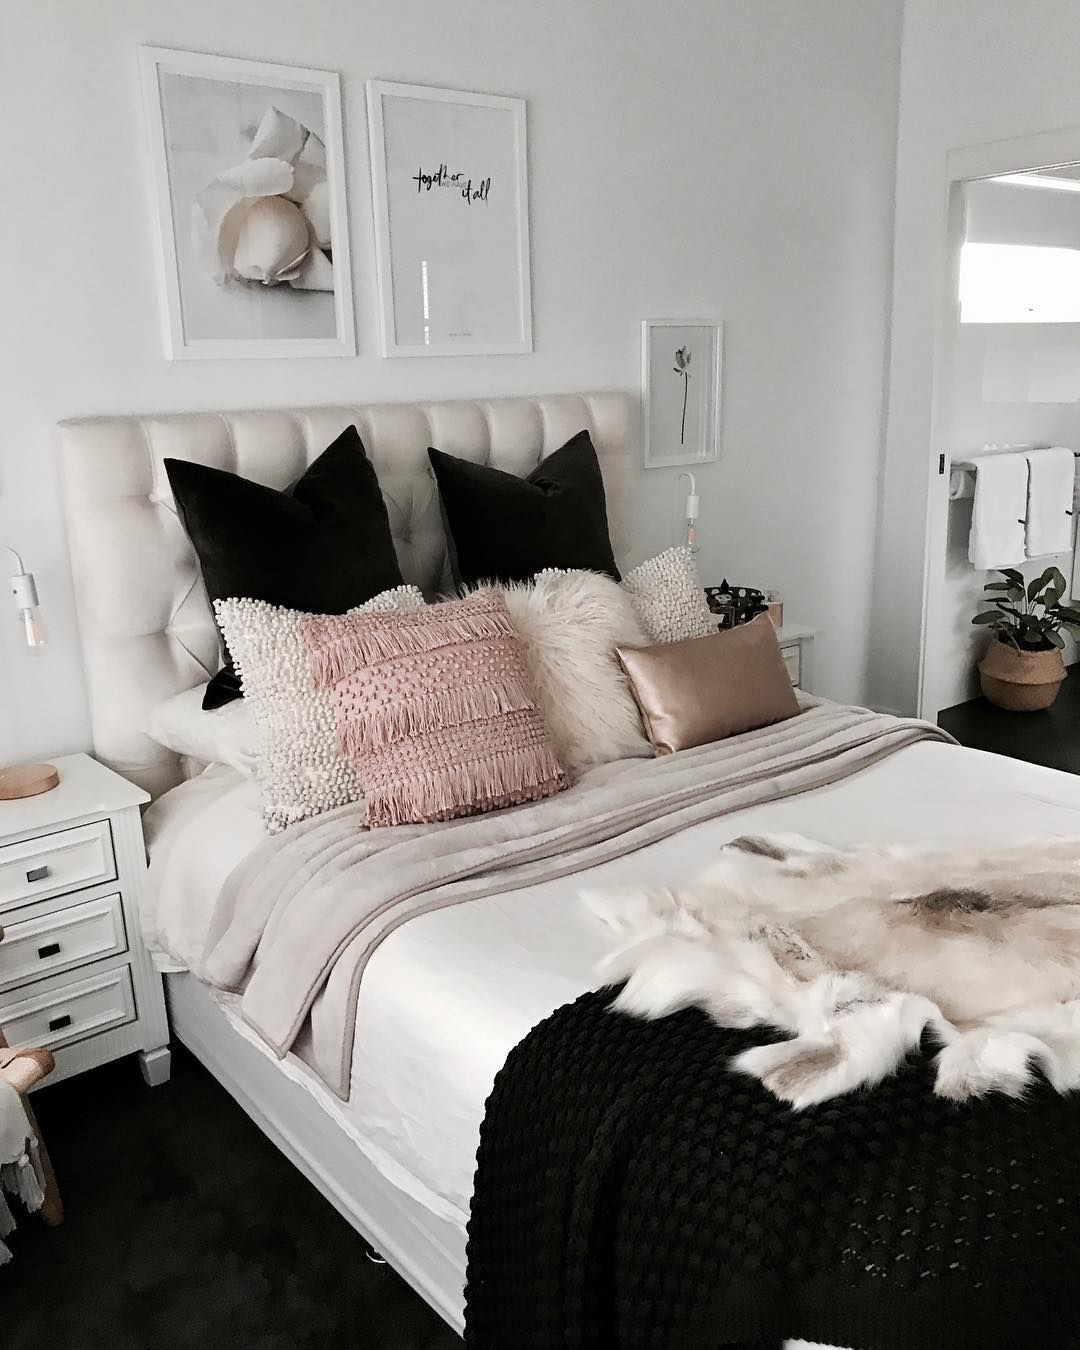 Bedroom Design For Teenager White Bedroom Colour Ideas Duck Egg Blue Bedroom Master Bedroom Interior Brown: Chambre Blanc Gris Noir Rose Scandinave Nordic Avec Plaid